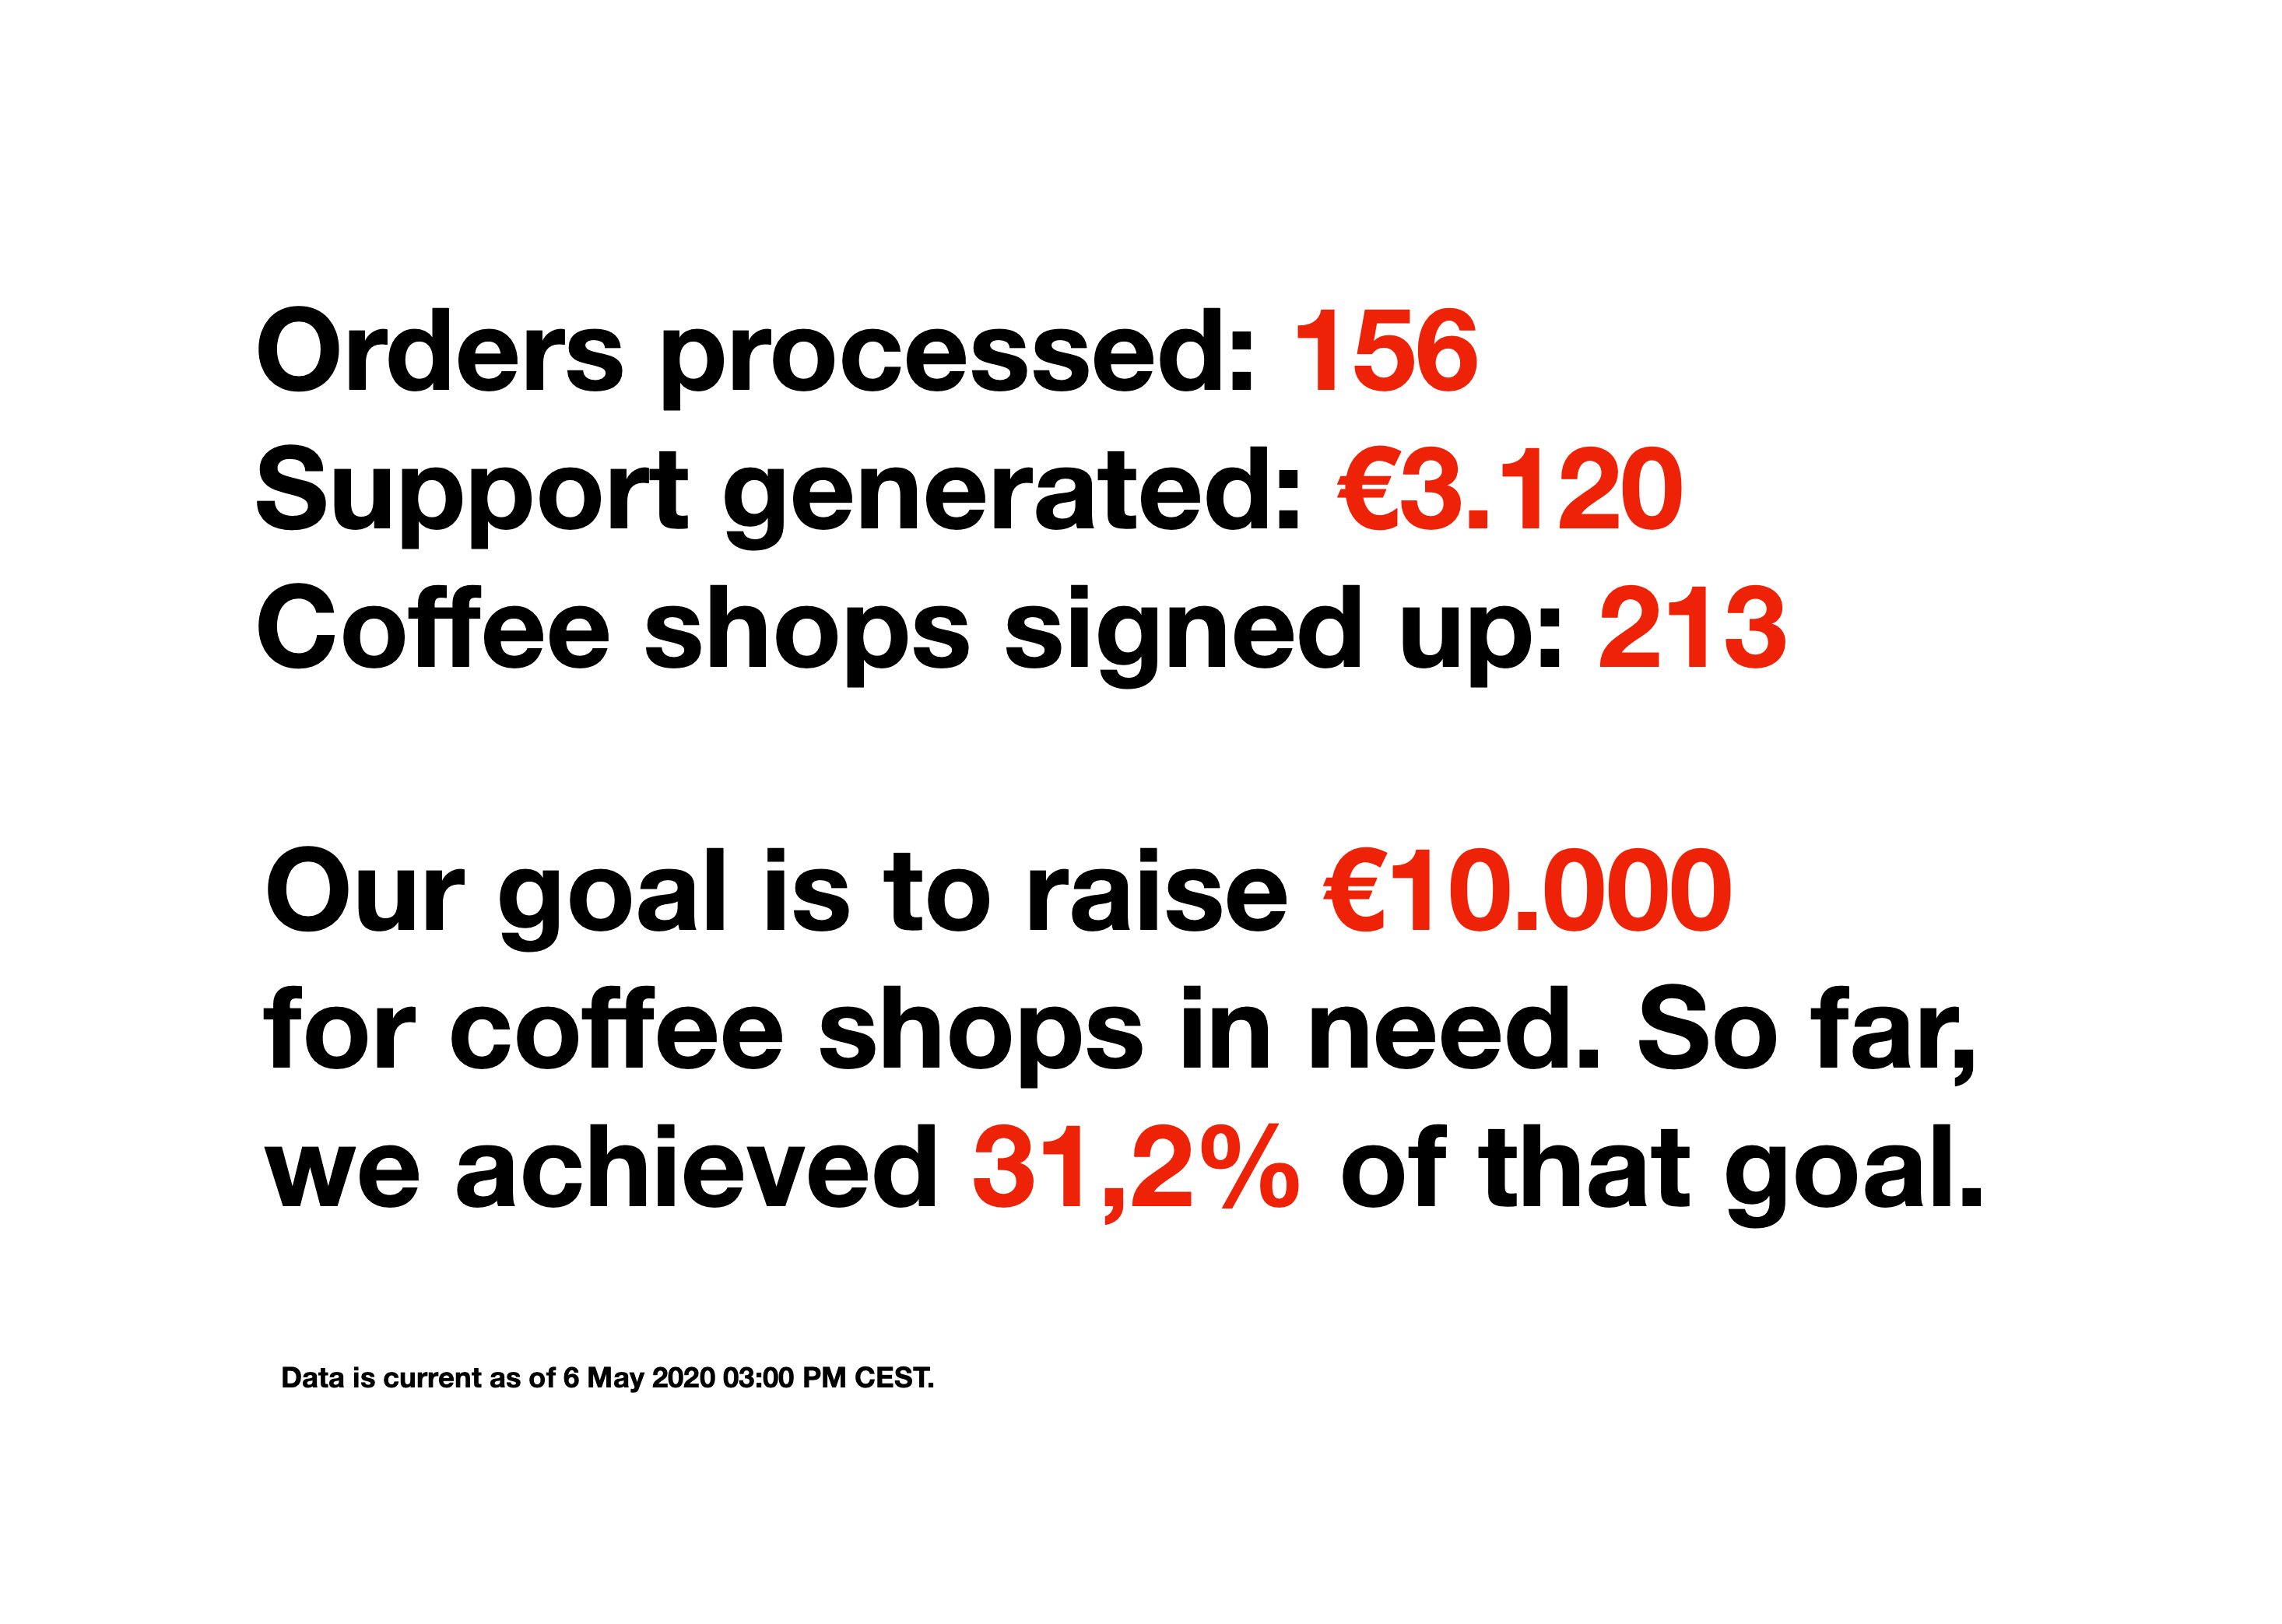 Standart Specialty Coffee Shop Support Inititative